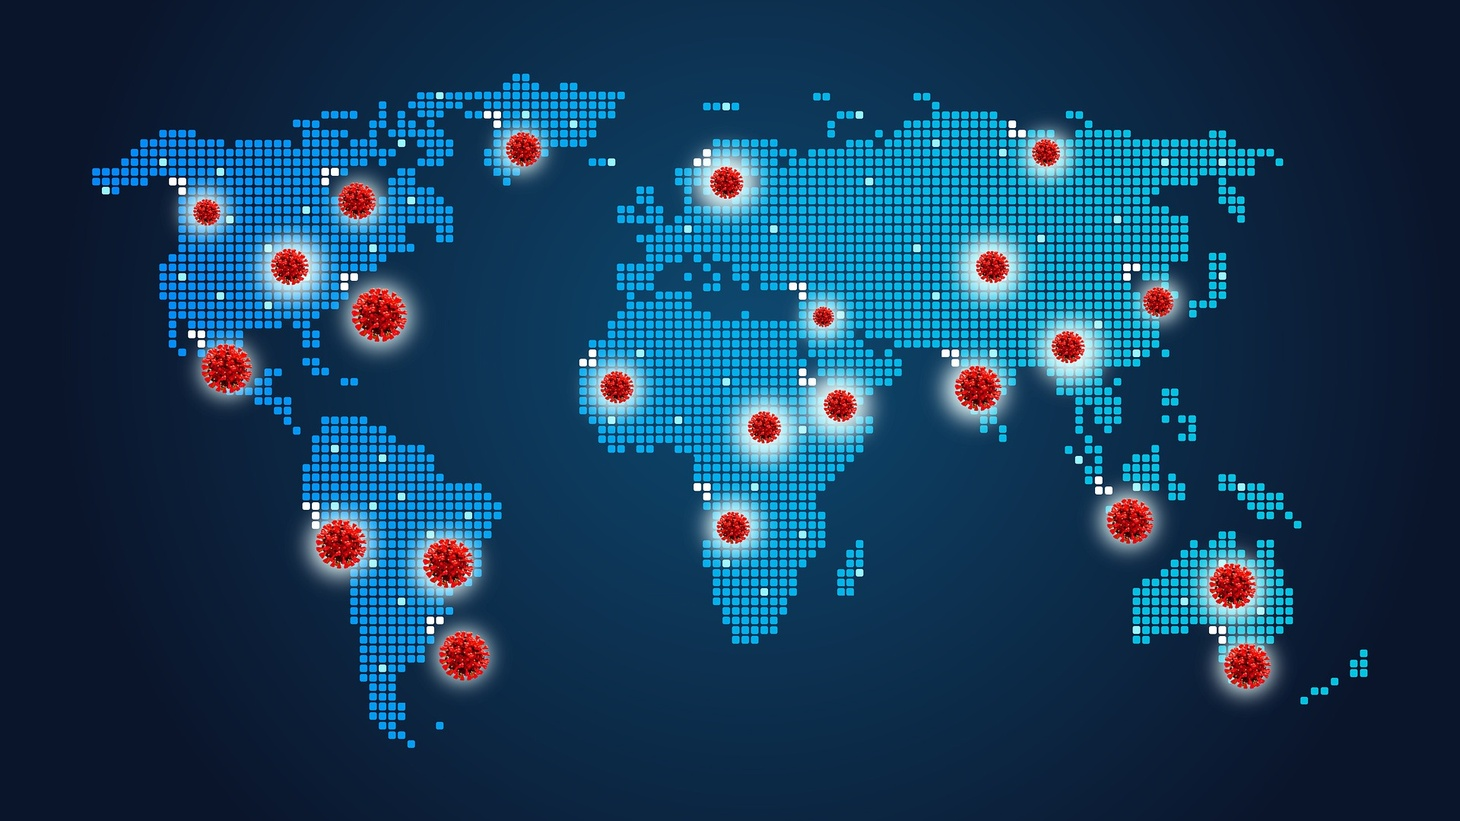 Contact tracing is key to knowing exactly how widespread the novel coronavirus is, and where hotspots are.